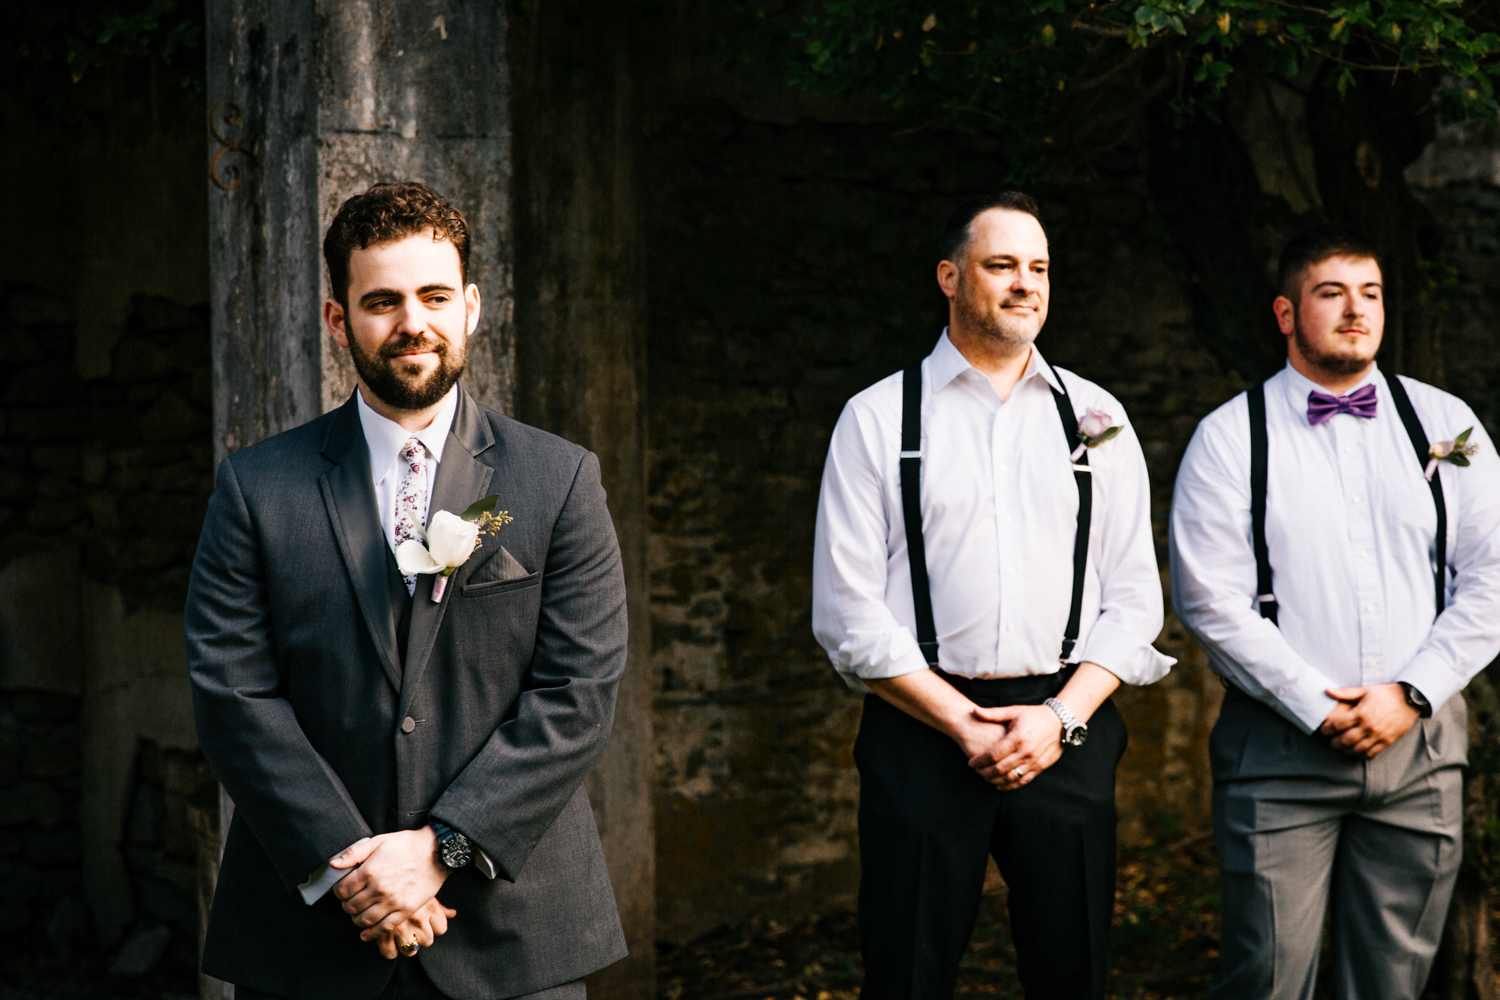 first-look-wedding-ceremony-gwyn-careg-inn-pomfret-connecticut-new-england-groom-groomsmen.jpg